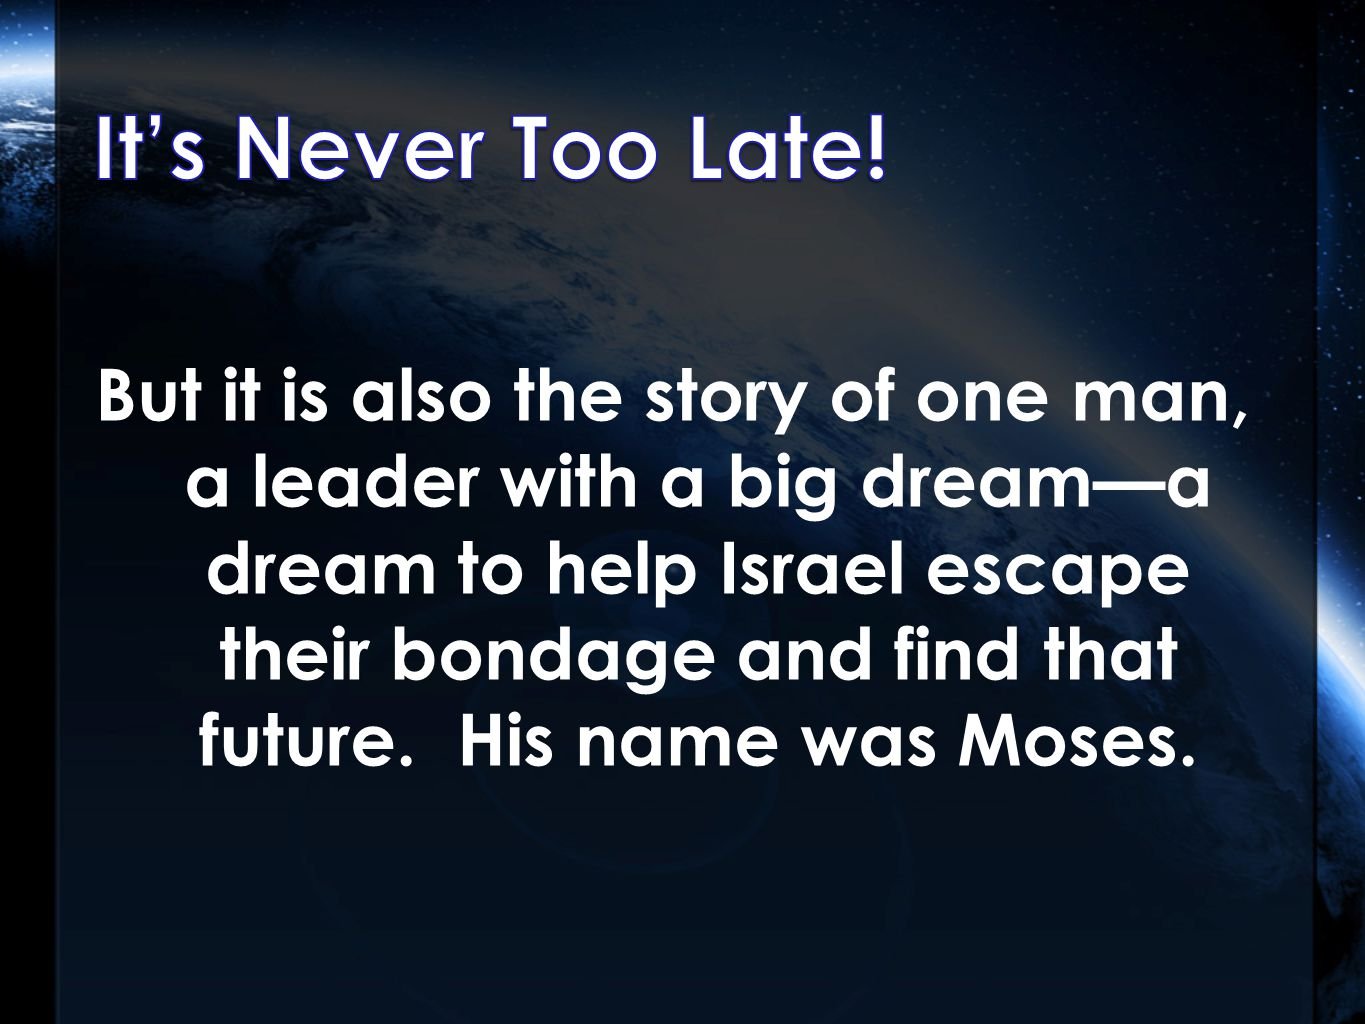 But it is also the story of one man, a leader with a big dream—a dream to help Israel escape their bondage and find that future.